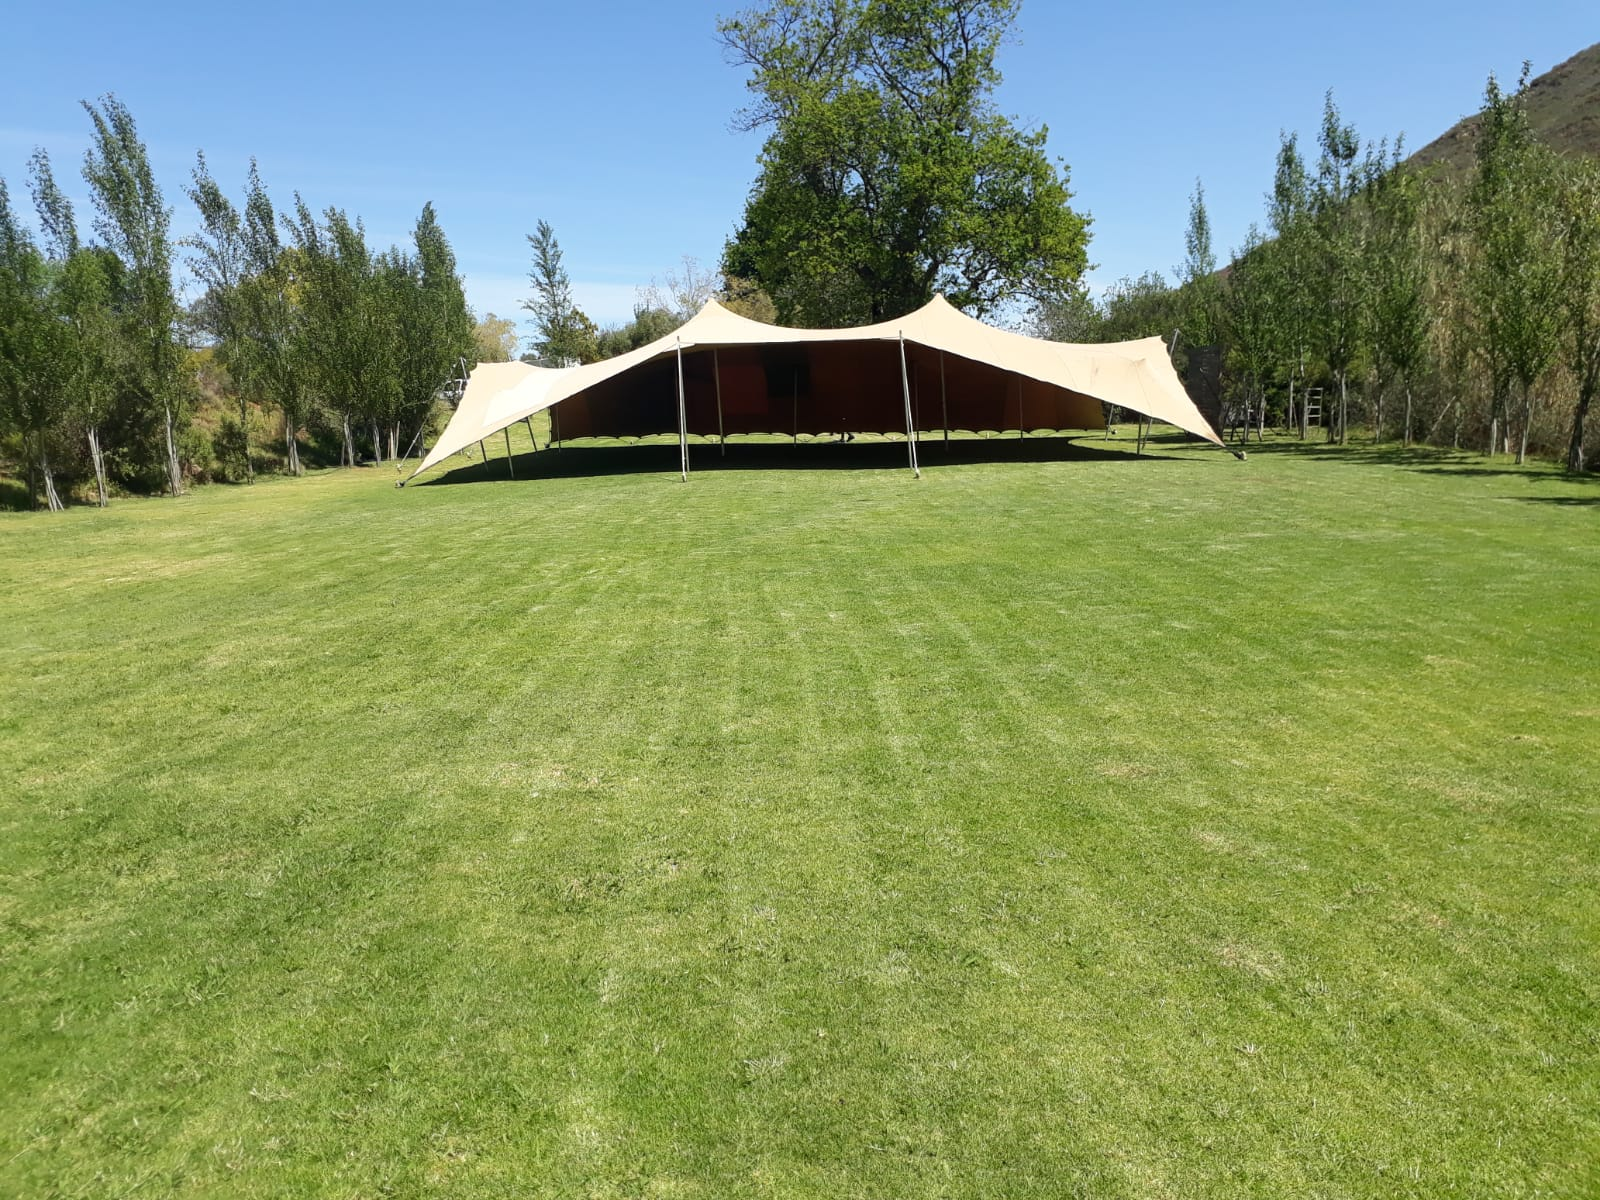 Creative-Stretch-Tents (14)